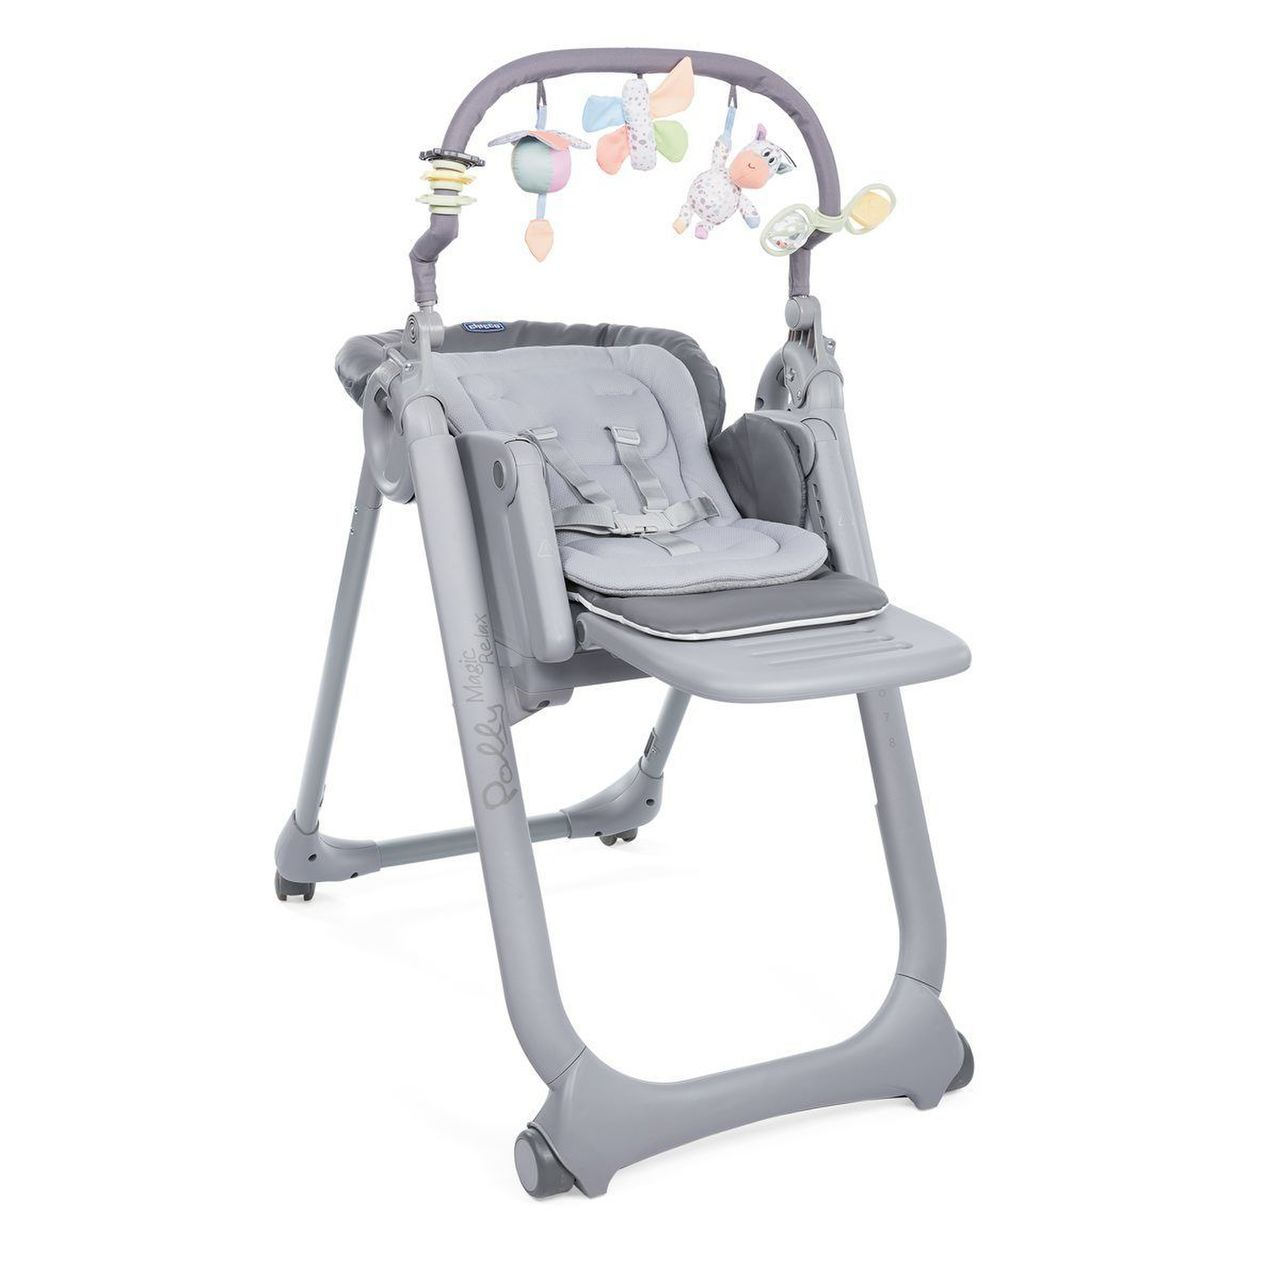 Chaise haute bébé Polly Magic Relax  Chaises Hautes  Chicco.fr